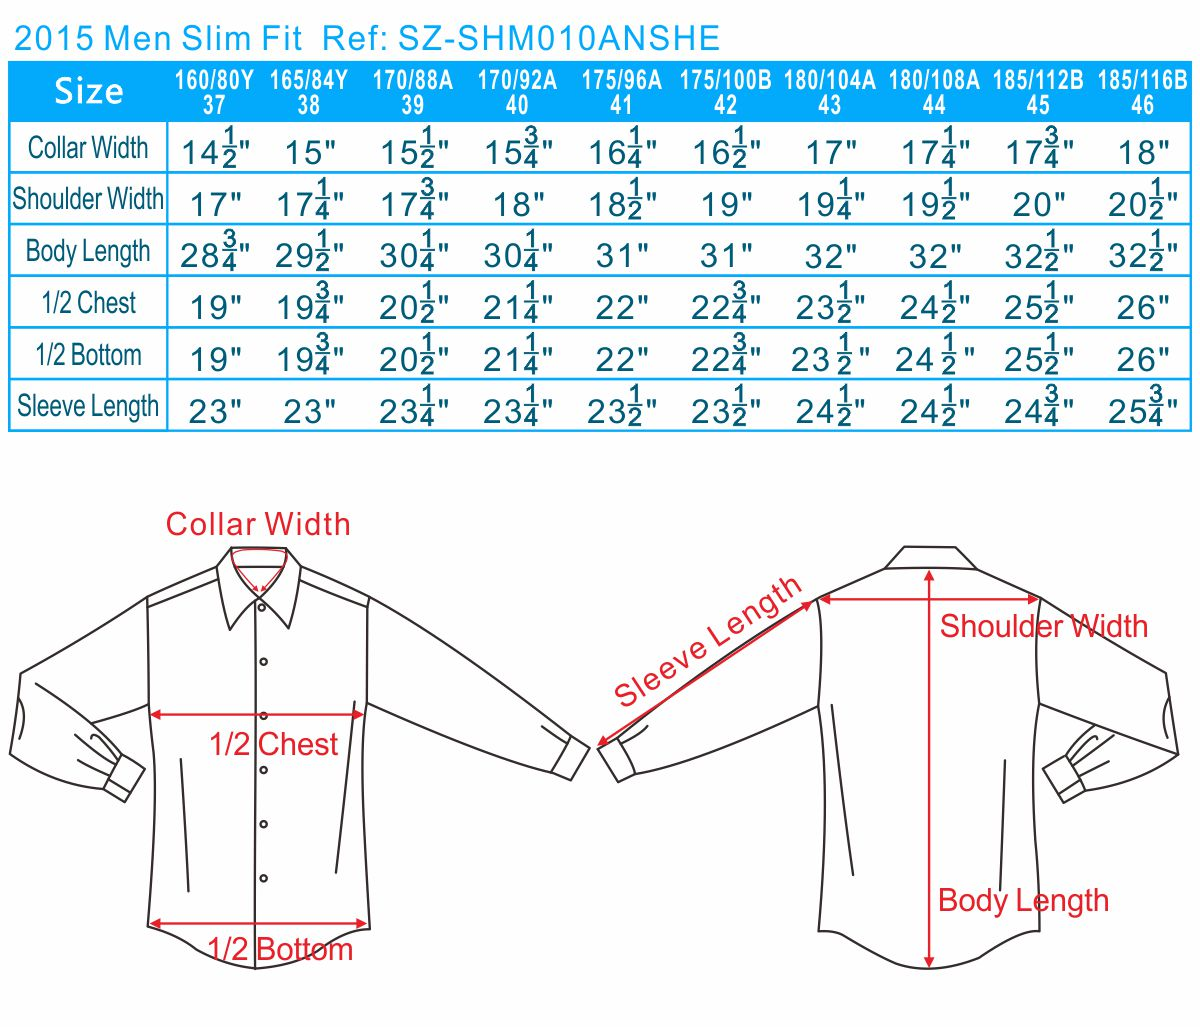 2015 Men Slim Fit